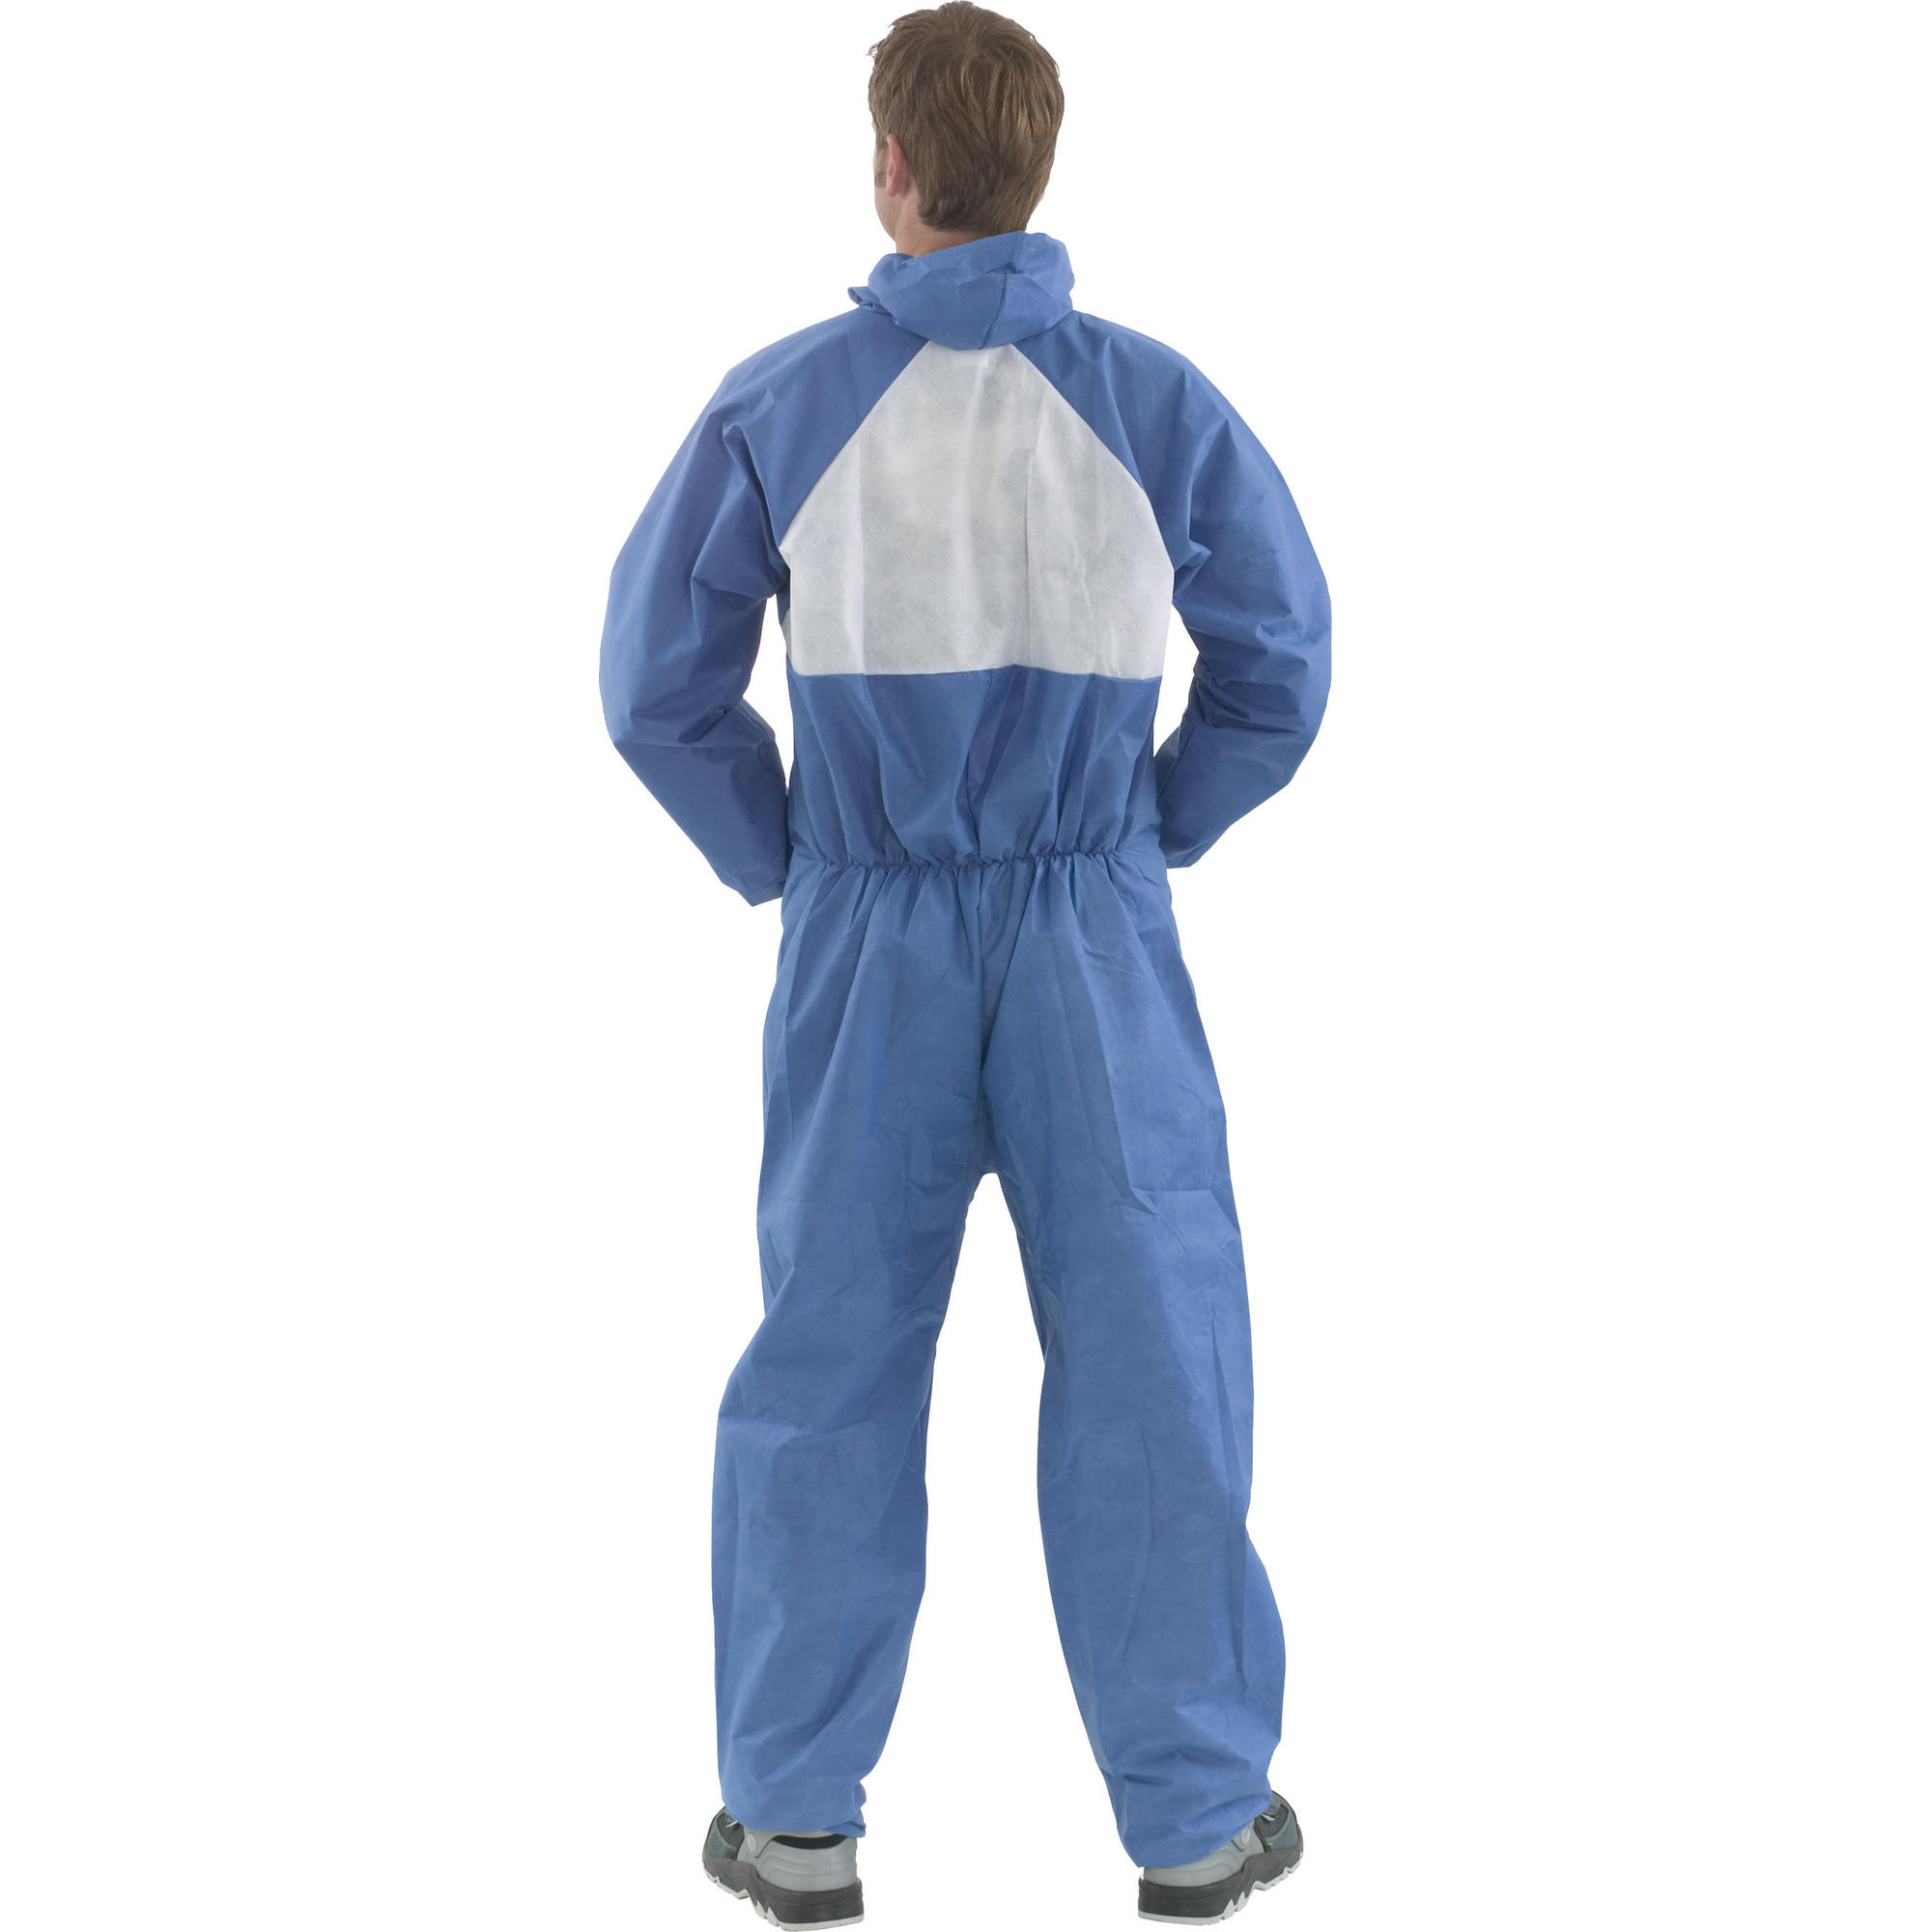 3M 4530 Fire Resistant Coveralls XL Blue/White Ref 4530XL [Pack 20] *Up to 3 Day Leadtime*